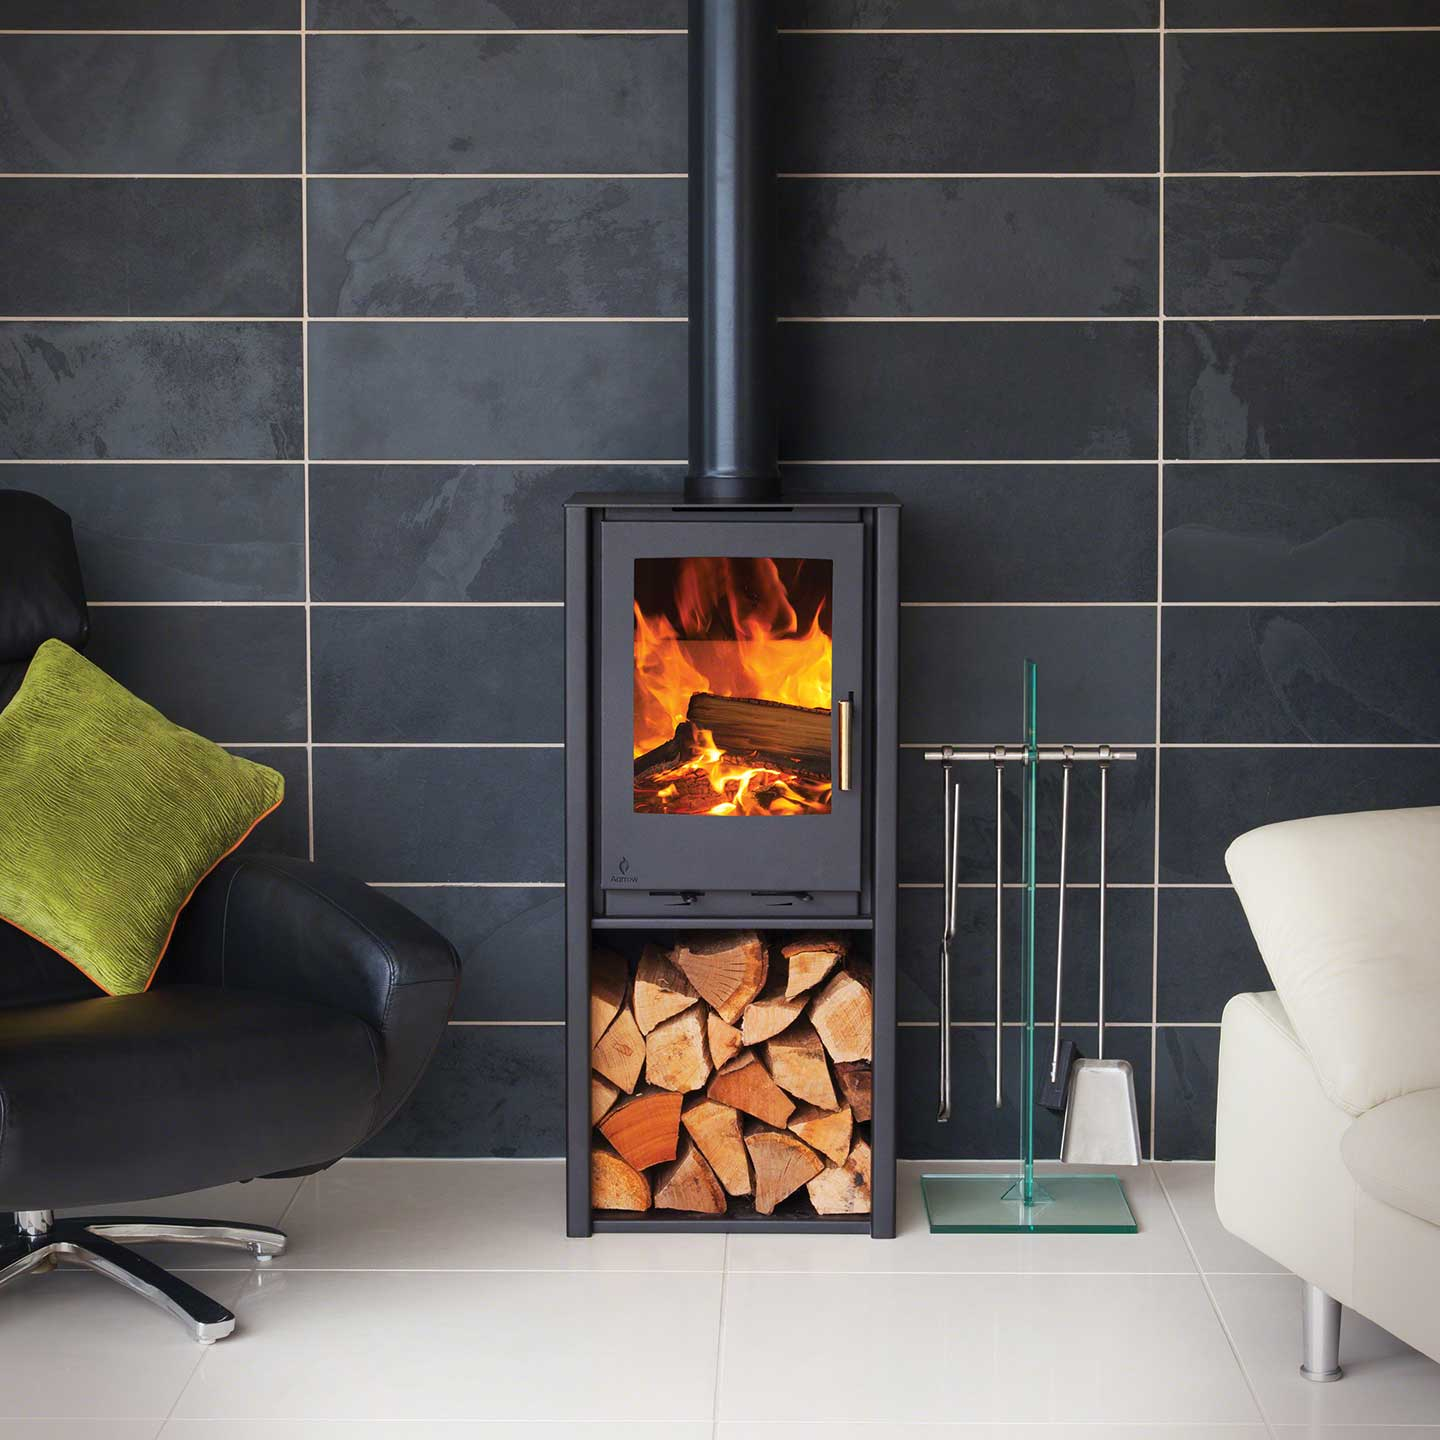 Aarrow i400 Tall Freestanding Stove - The Stove Site - Approved ...